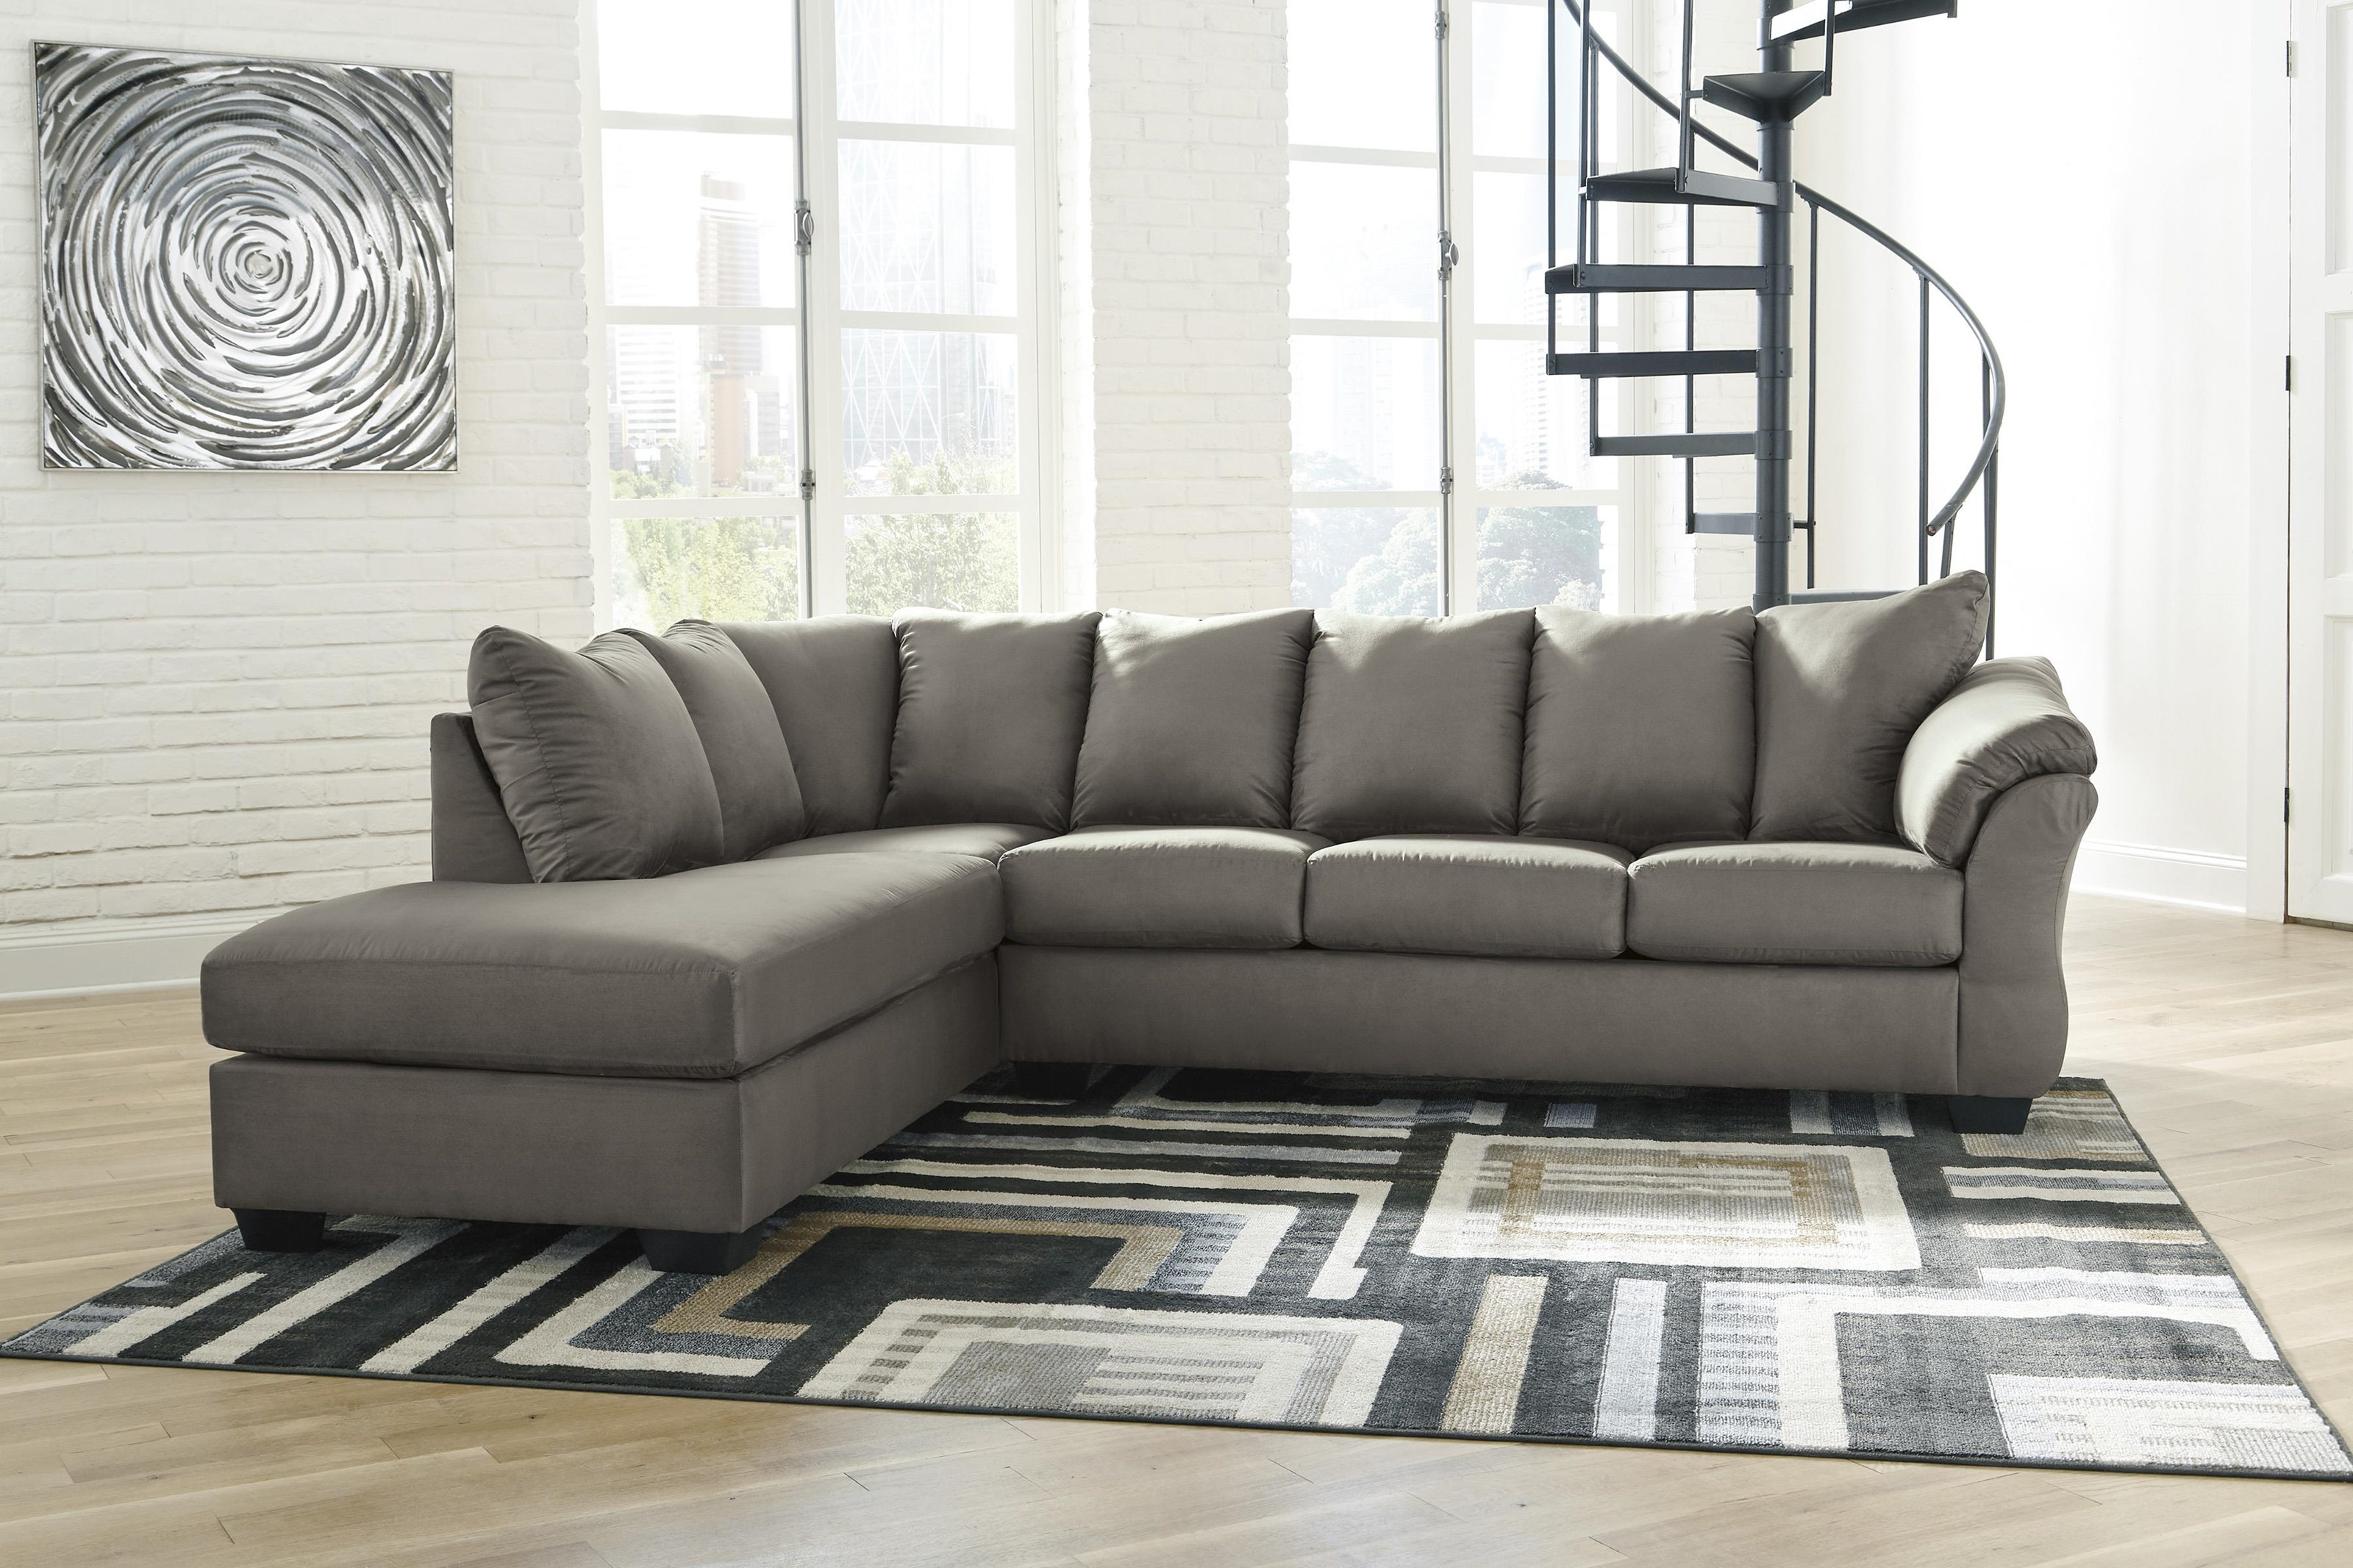 Darcy - Cobblestone 2 PC Sectional and Chair Set by Signature Design by Ashley at Sam Levitz Outlet